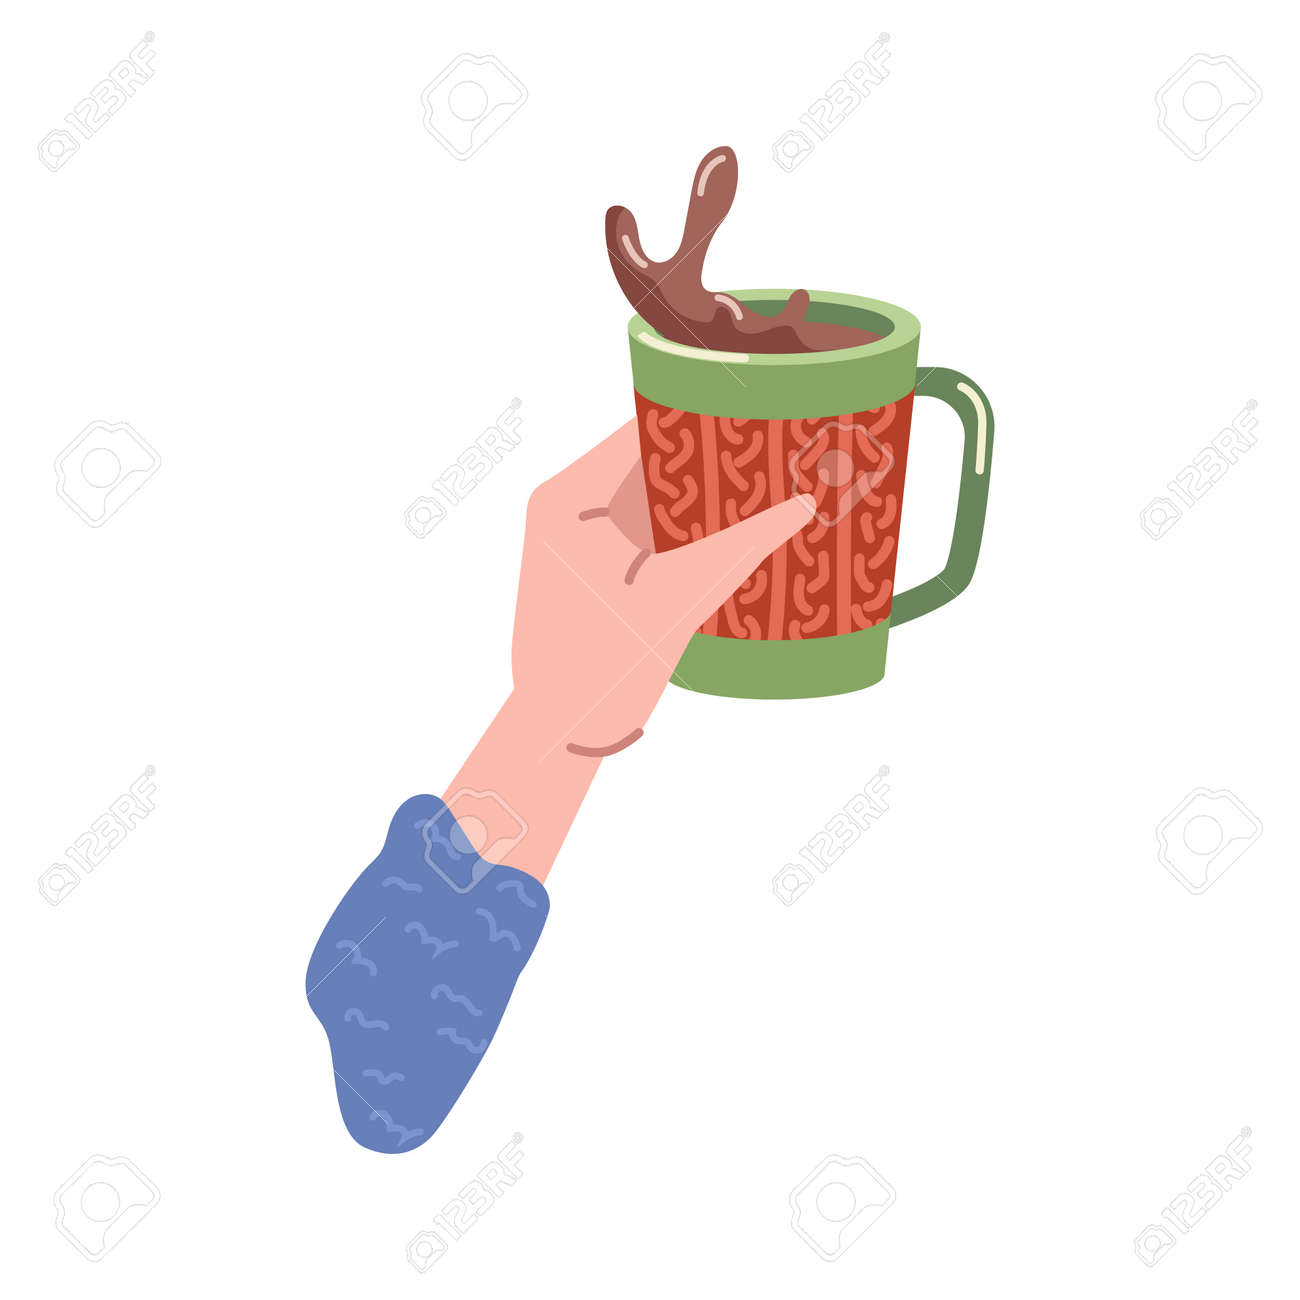 Beverage splash in cup of coffee or hot chocolate drink. Isolated hand holding tasty cappuccino in mug, served portion in cafe or restaurant. Americano or espresso. Vector in flat cartoon style - 171589770